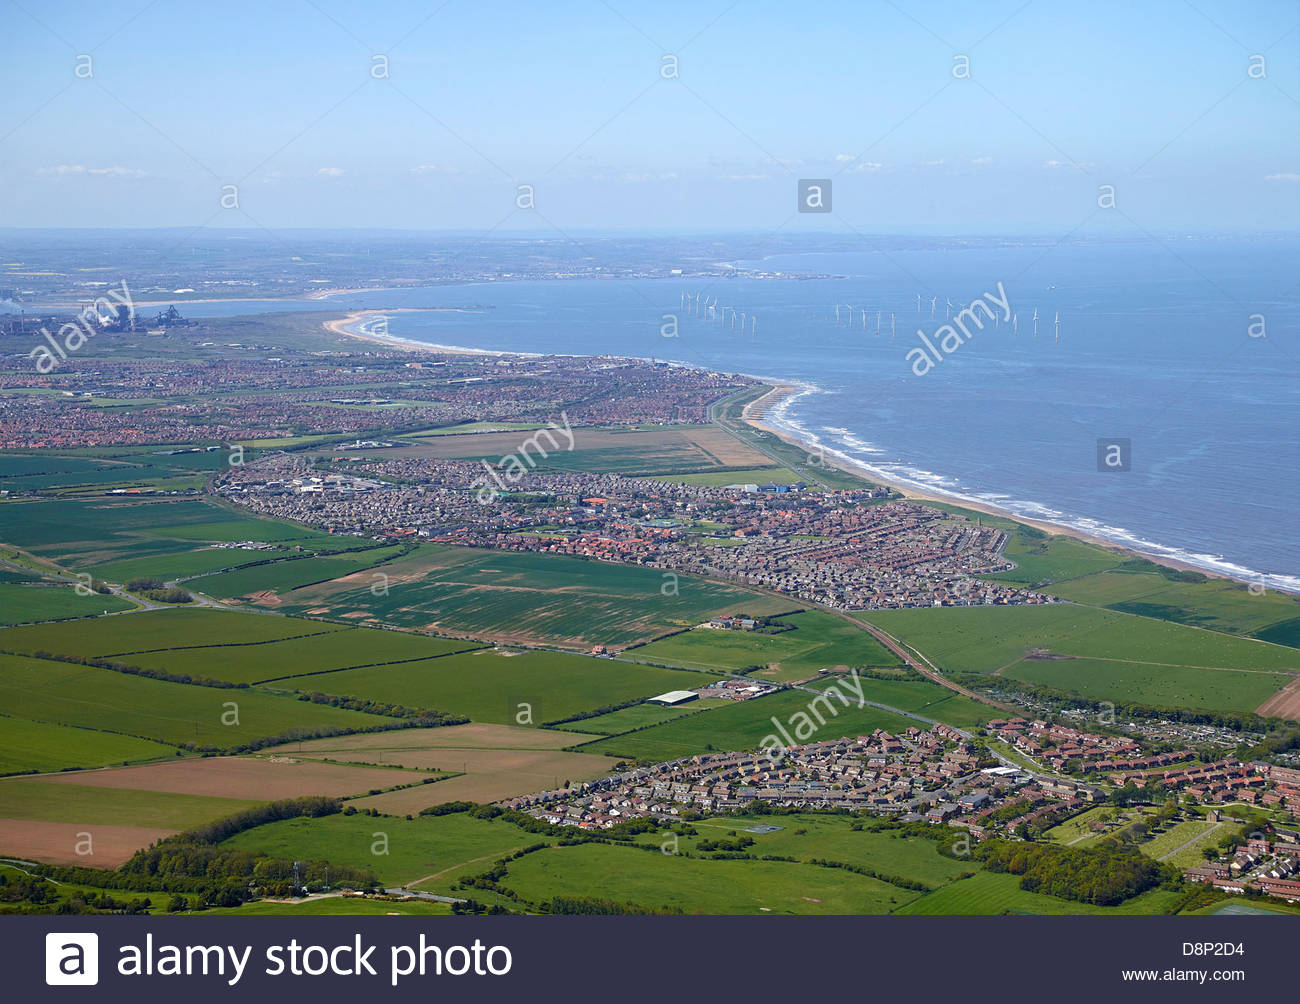 Teeside Coast looking north over Redcar, North East England, the mouth of the Tees top left - Stock Image